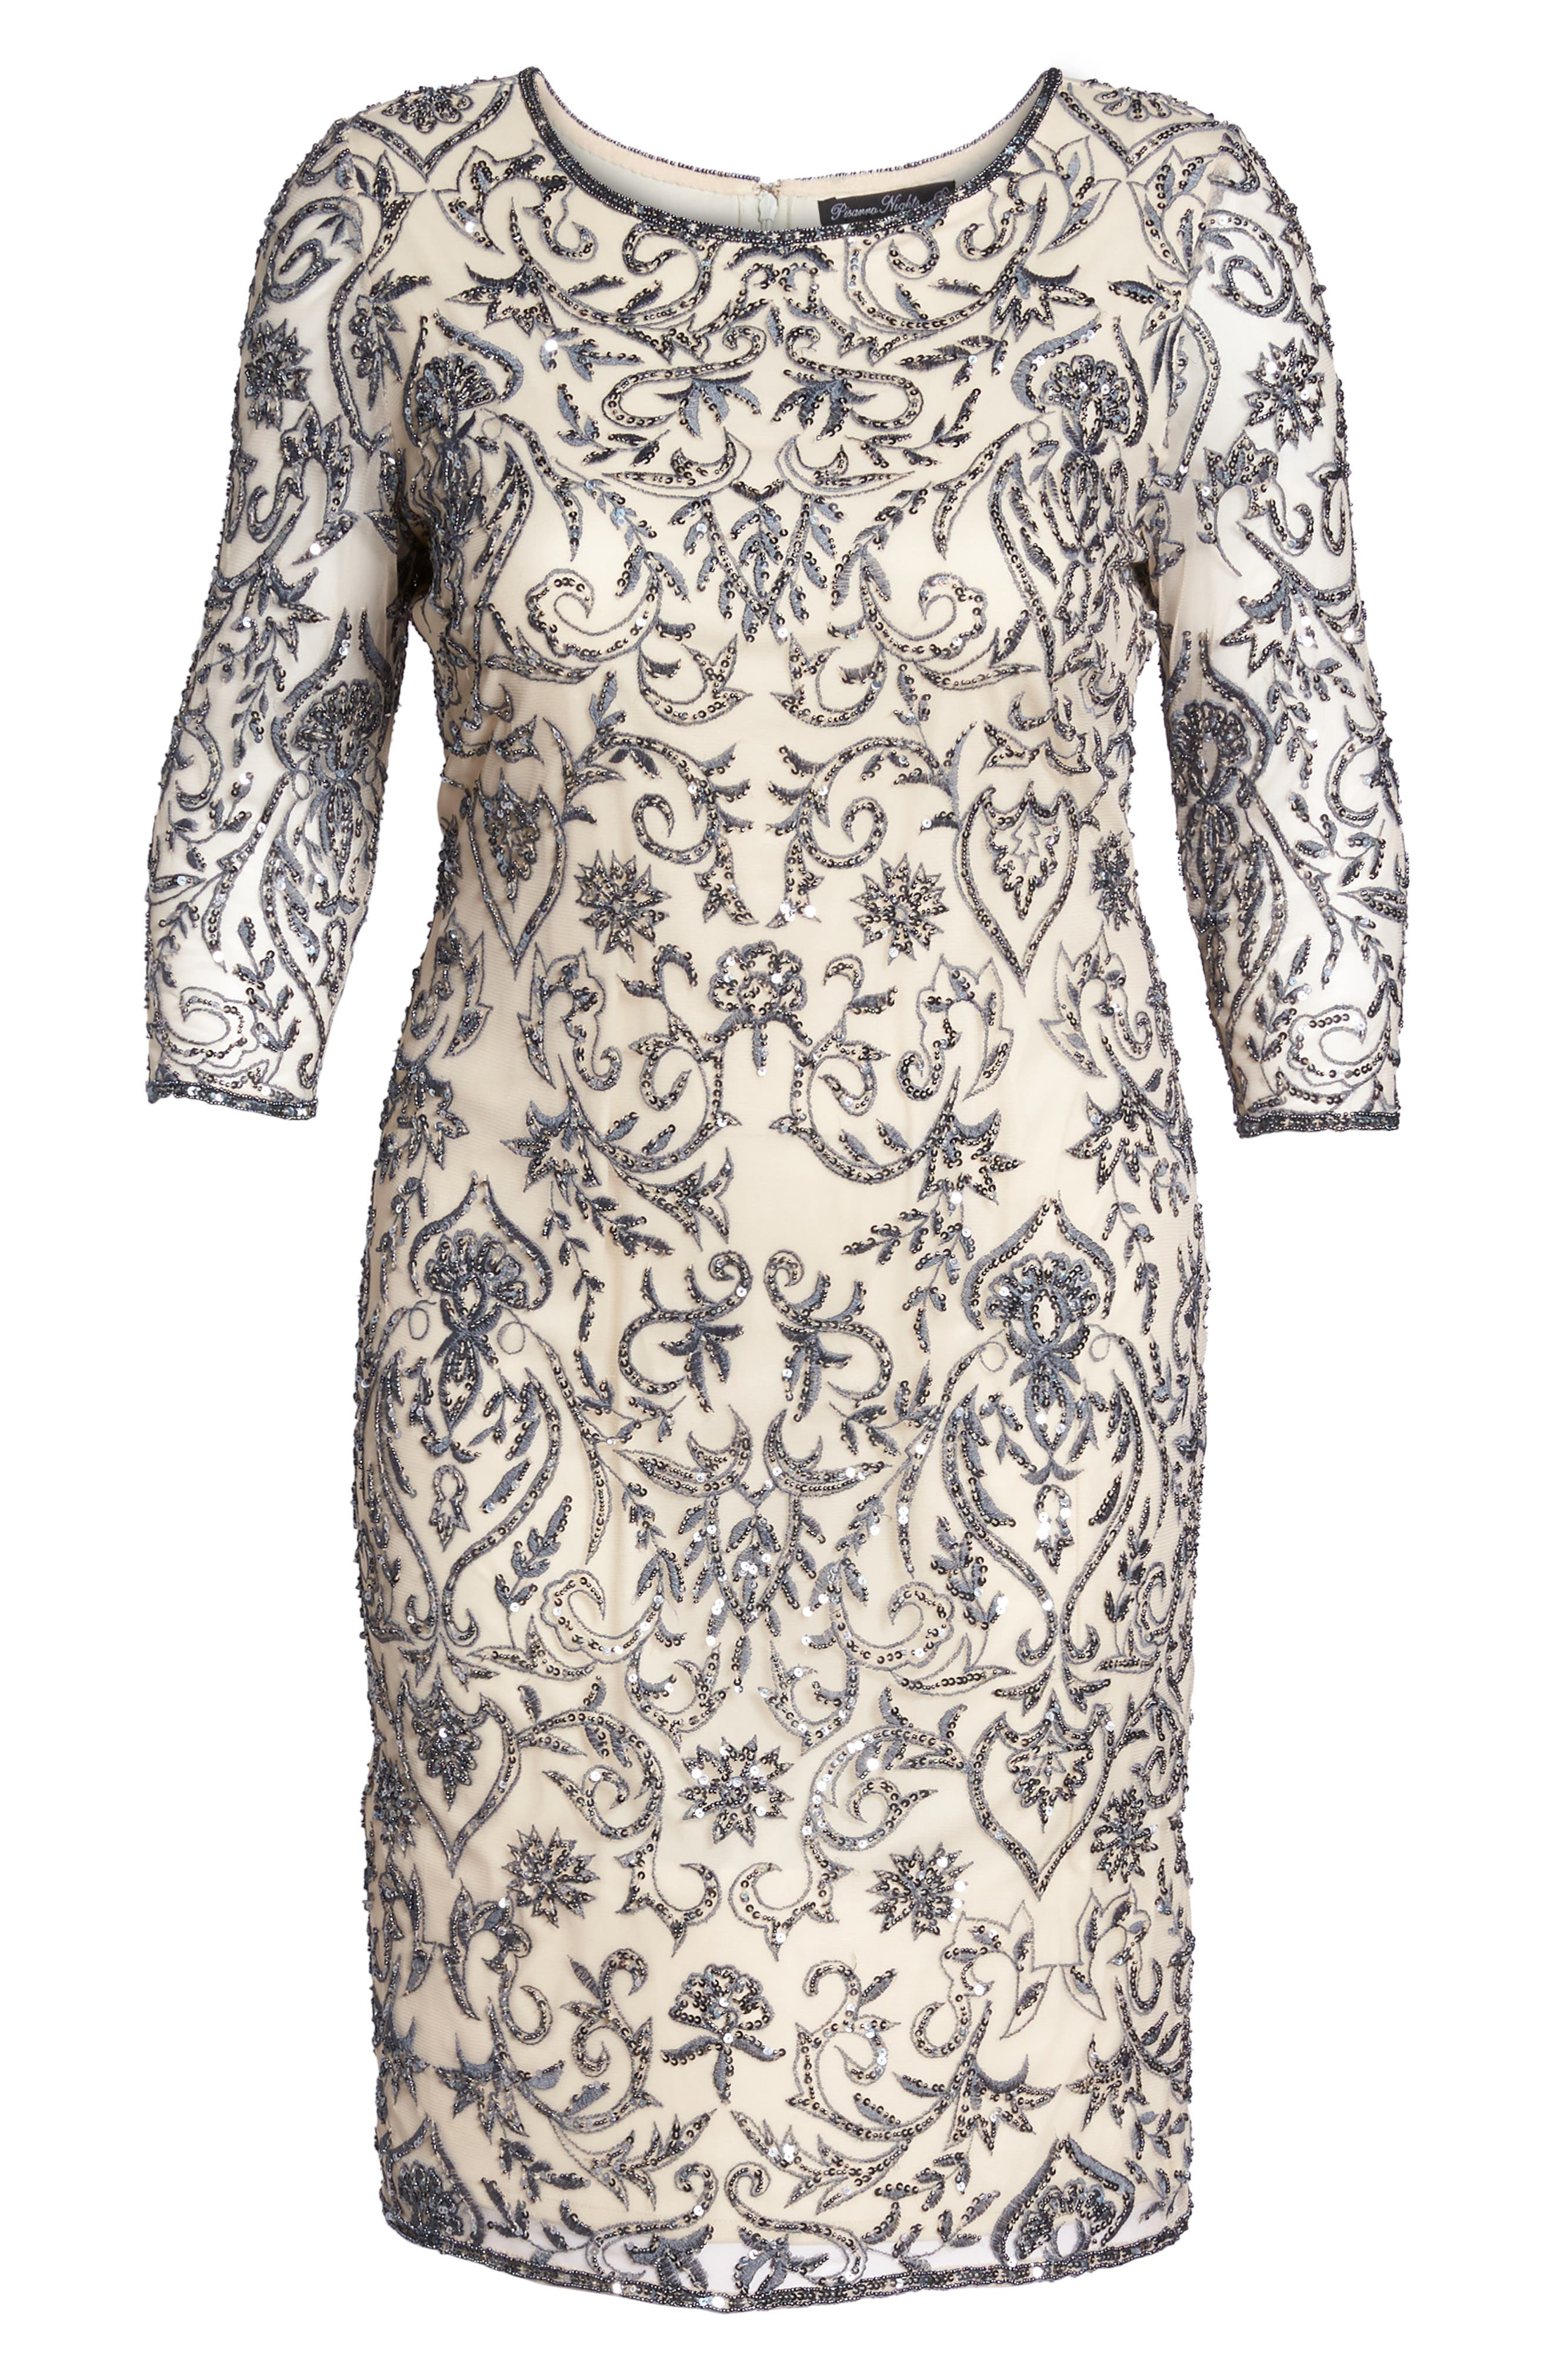 Sequin Embroidered Sheath Dress,                             Alternate thumbnail 6, color,                             651